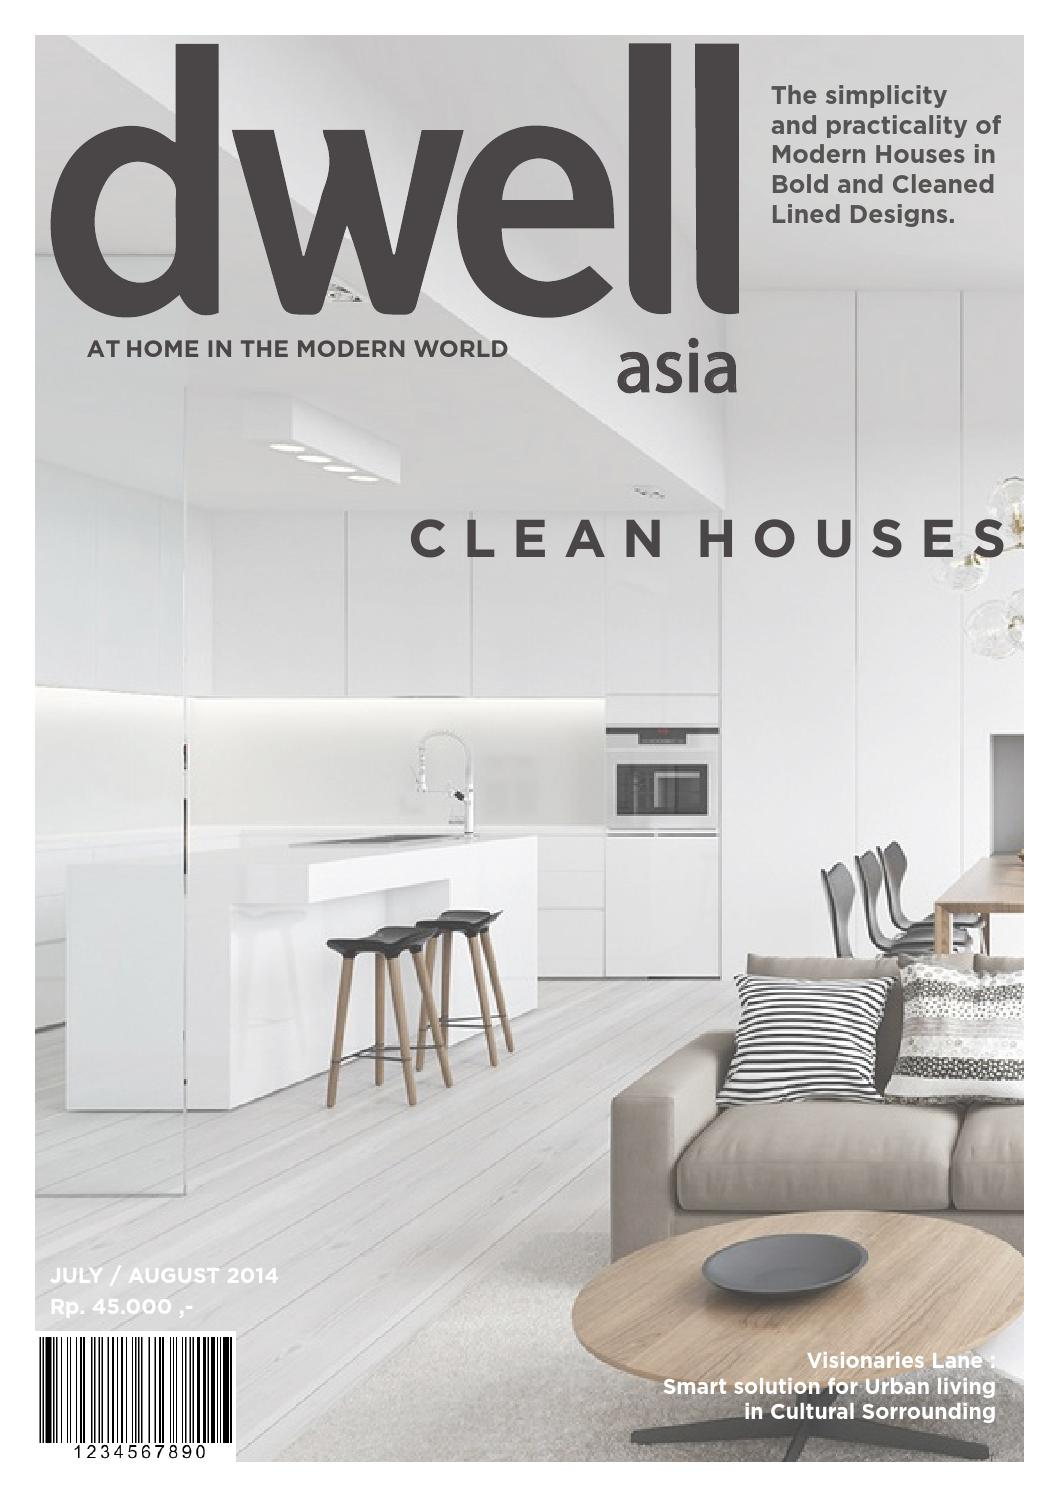 Dwell asia magazine final truly by risqullah syahrir azhiz issuu